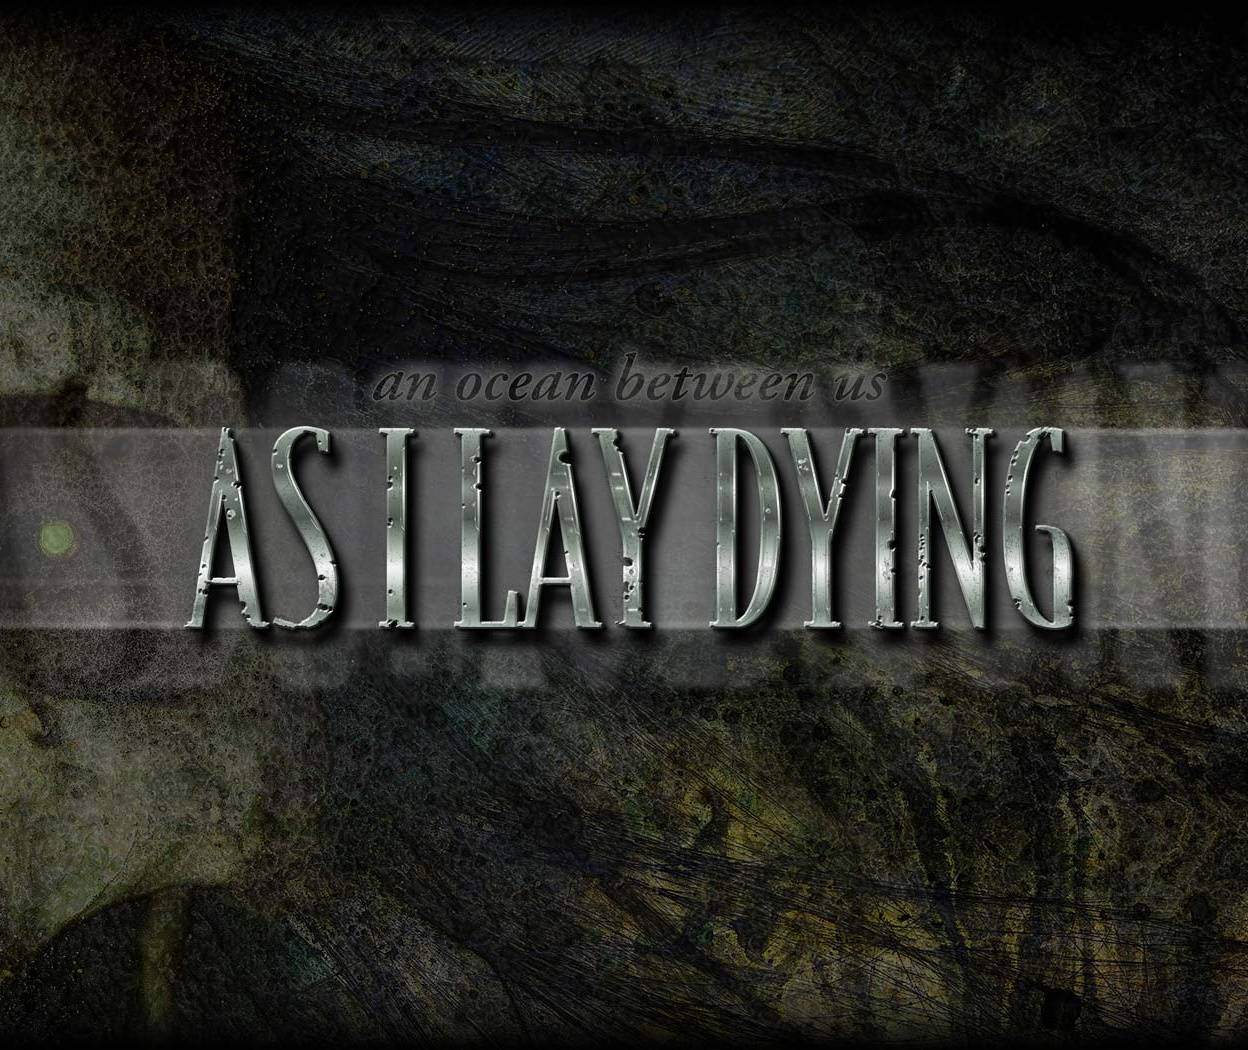 As I Lay Dying Wallpaper By Banxdeathxninj 2f Free On Zedge